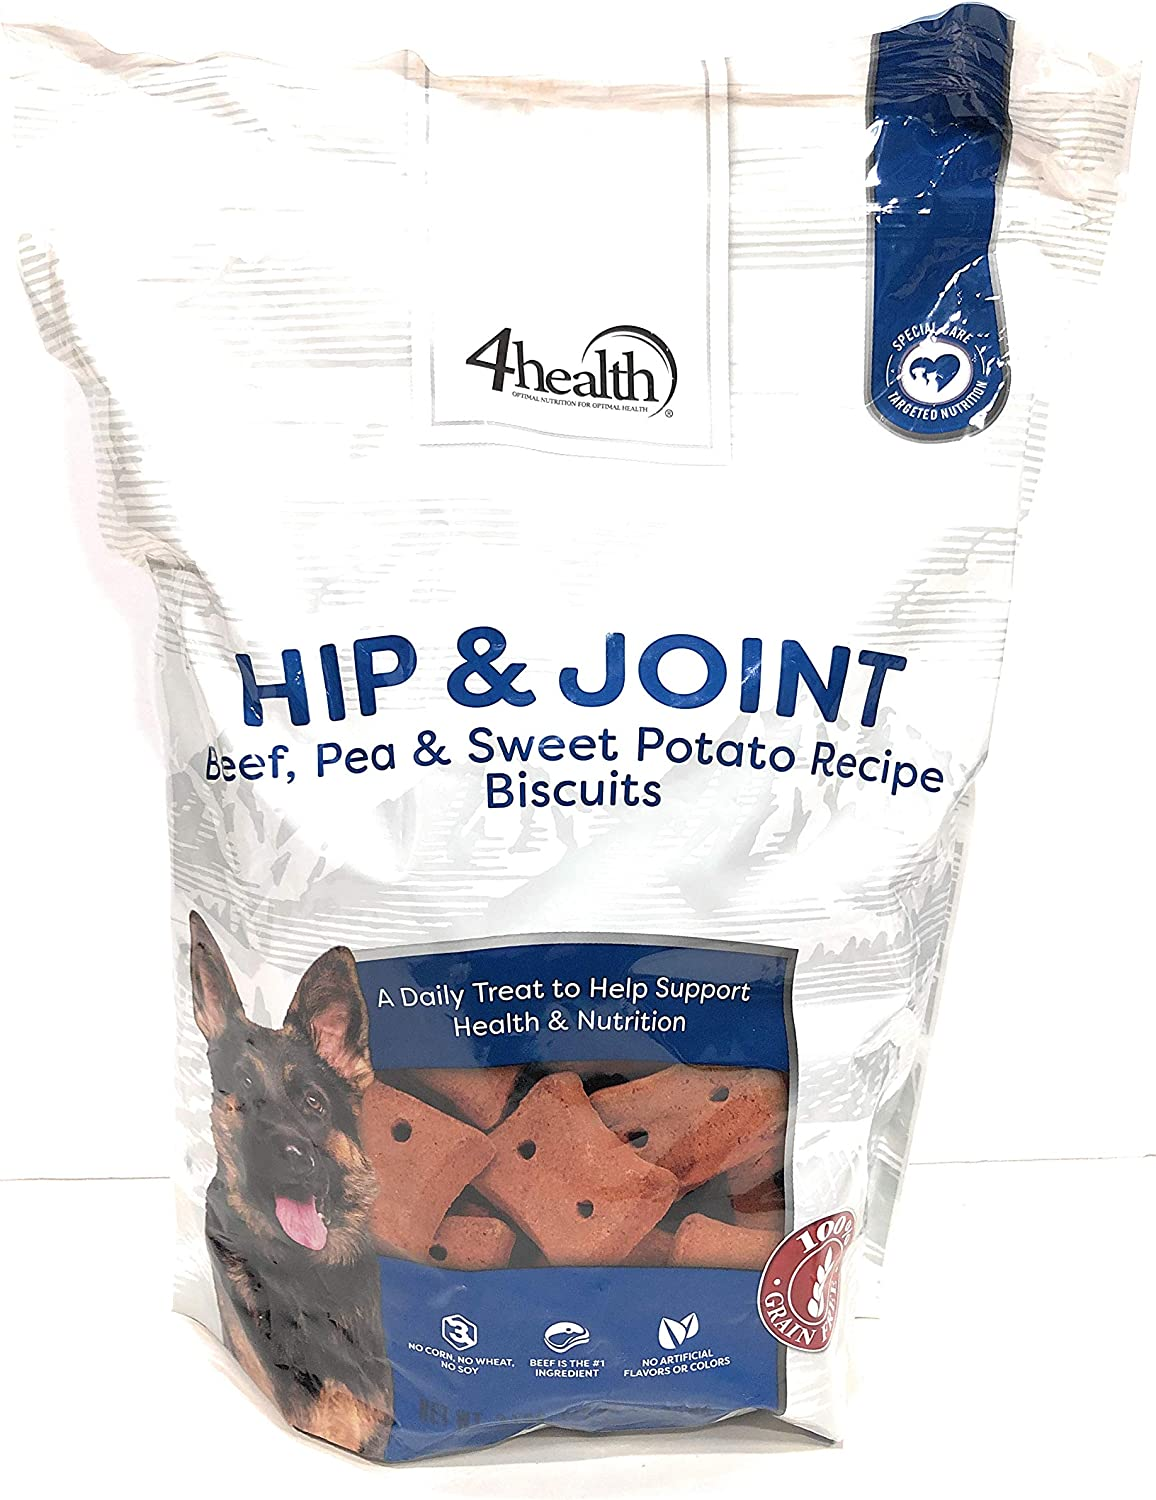 4health Tractor Supply Company Hip & Joint Beef Pea Sweet Potato Recipe Biscuits Treats Grain Free, 3 Pound Bag